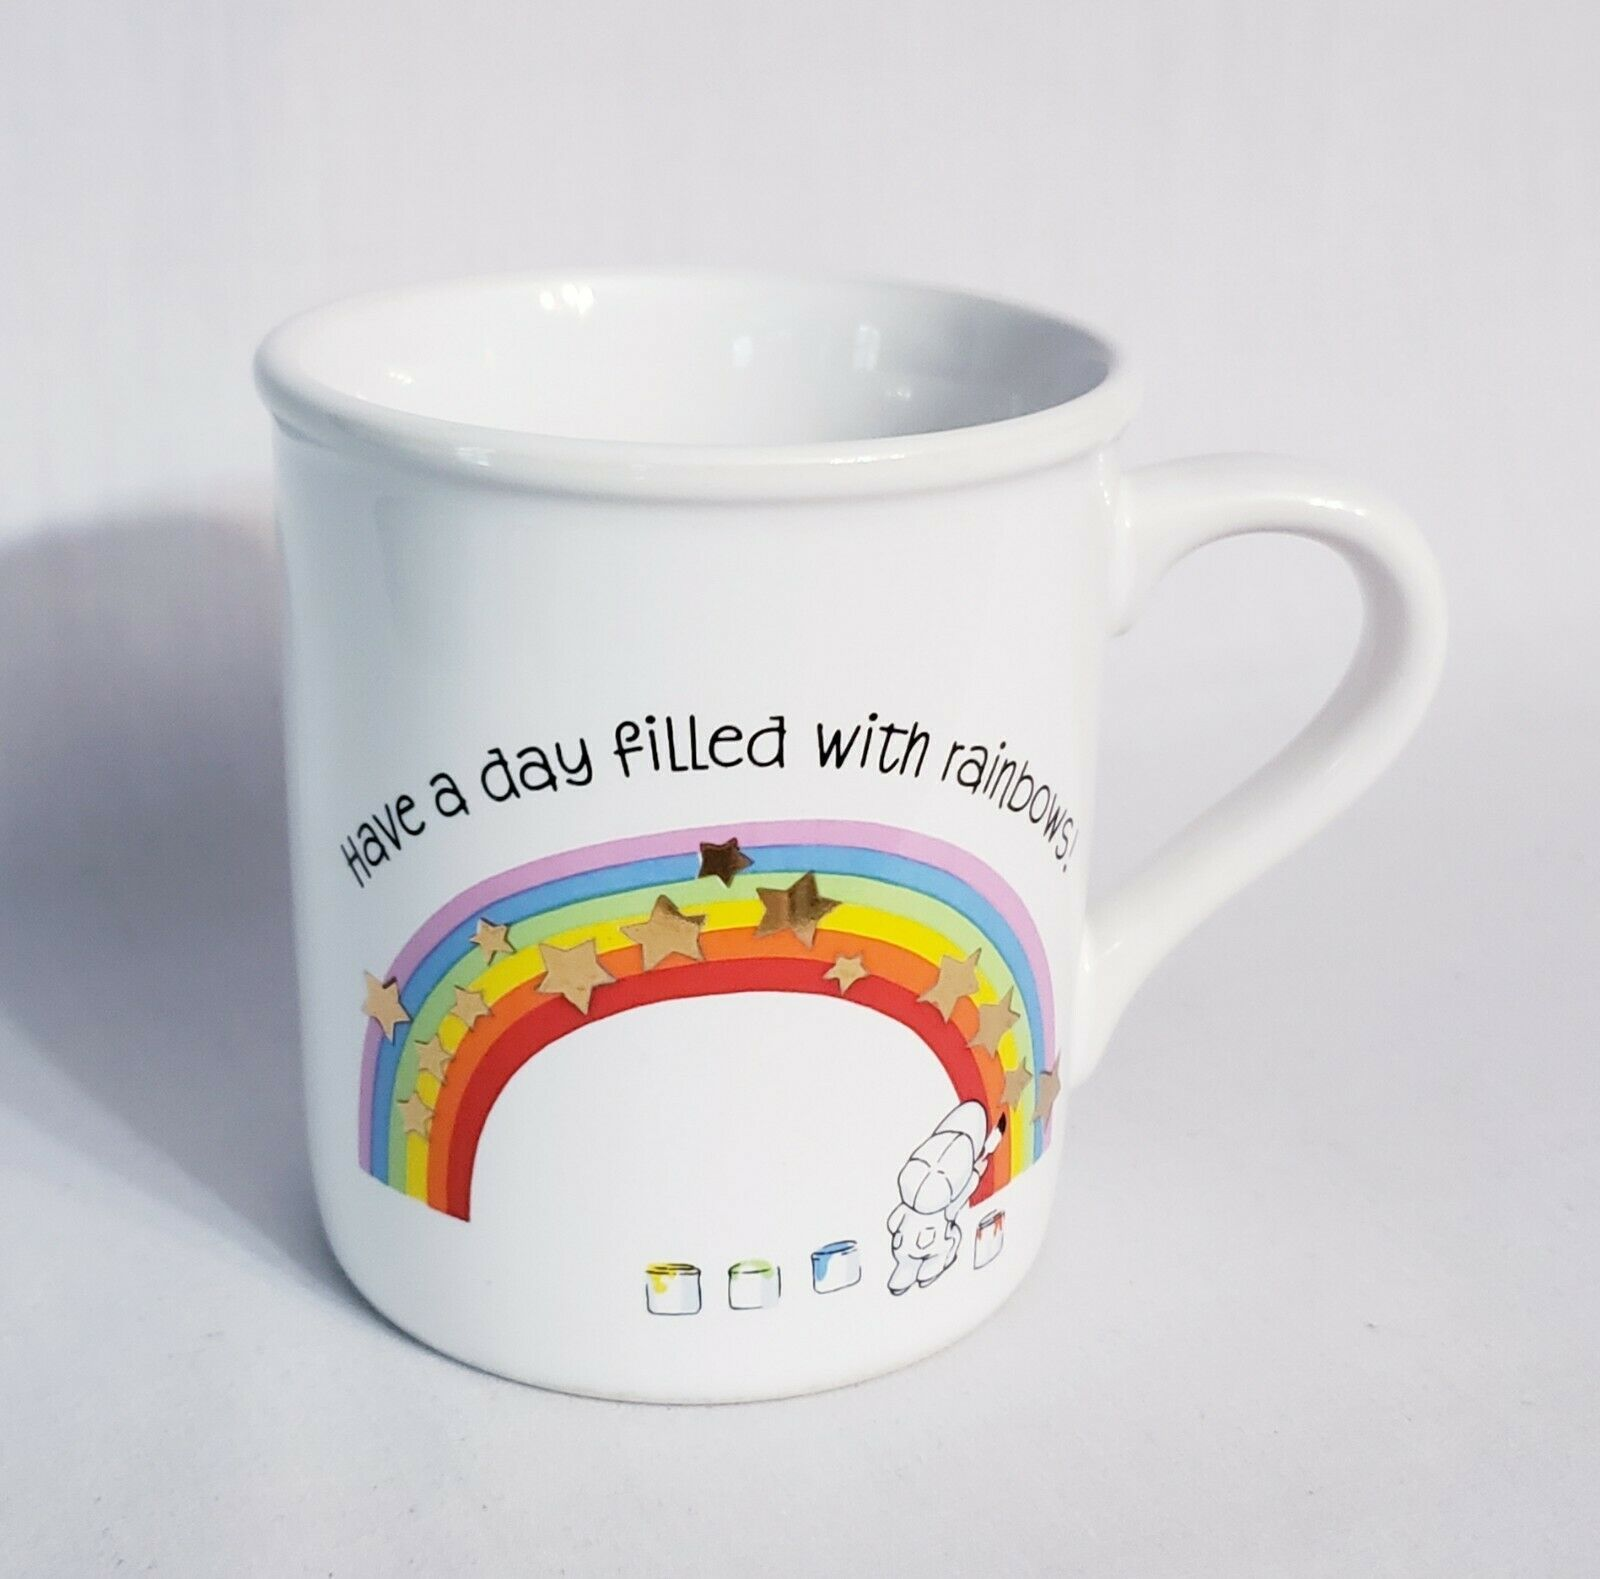 Primary image for Hallmark Mug Mates Day Filled with Rainbows and With Love 1983 Coffee Mug Cup